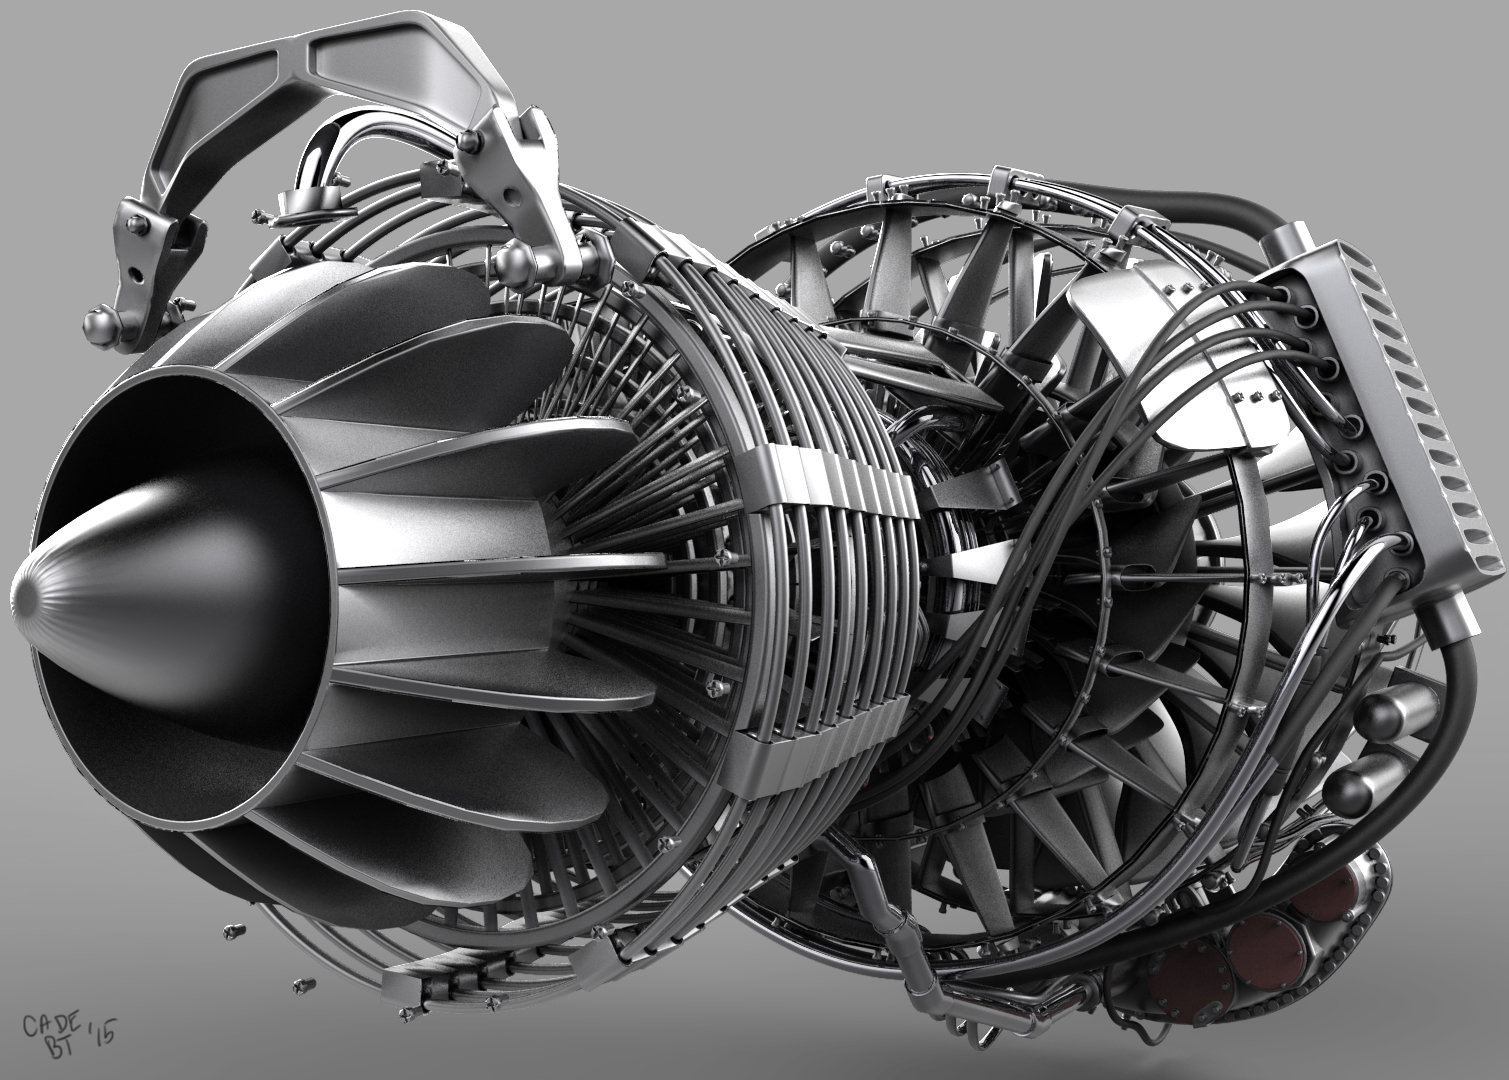 Jet Engine Hd Wallpaper Cade Jacobs Turbo Fan Jet Engine